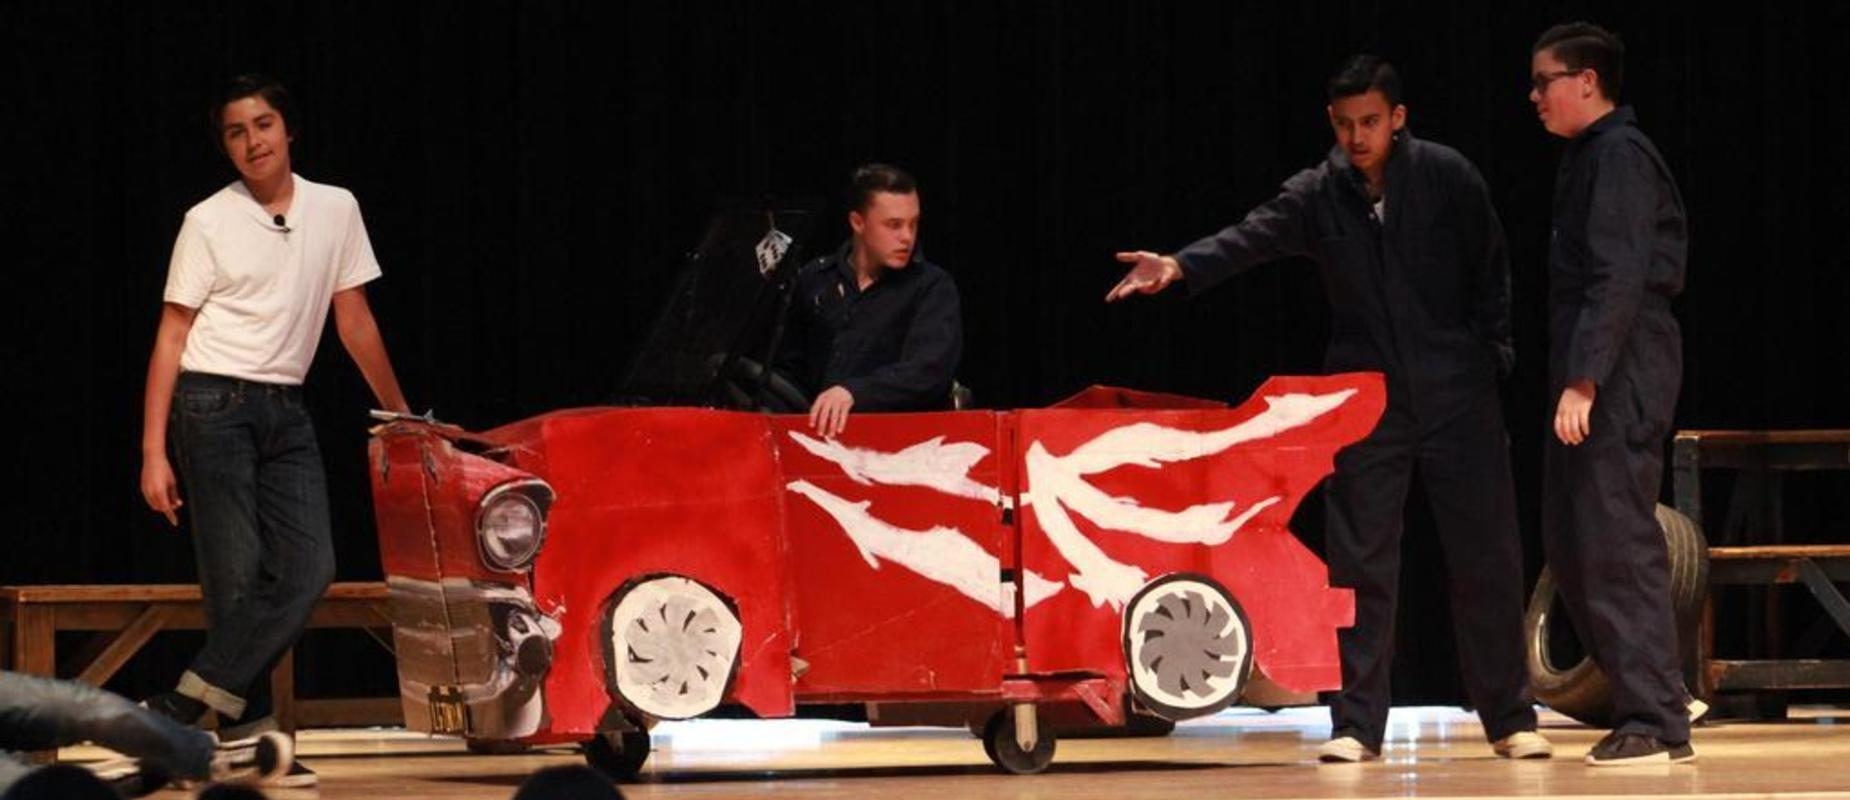 Johnson Middle School's Production of Grease